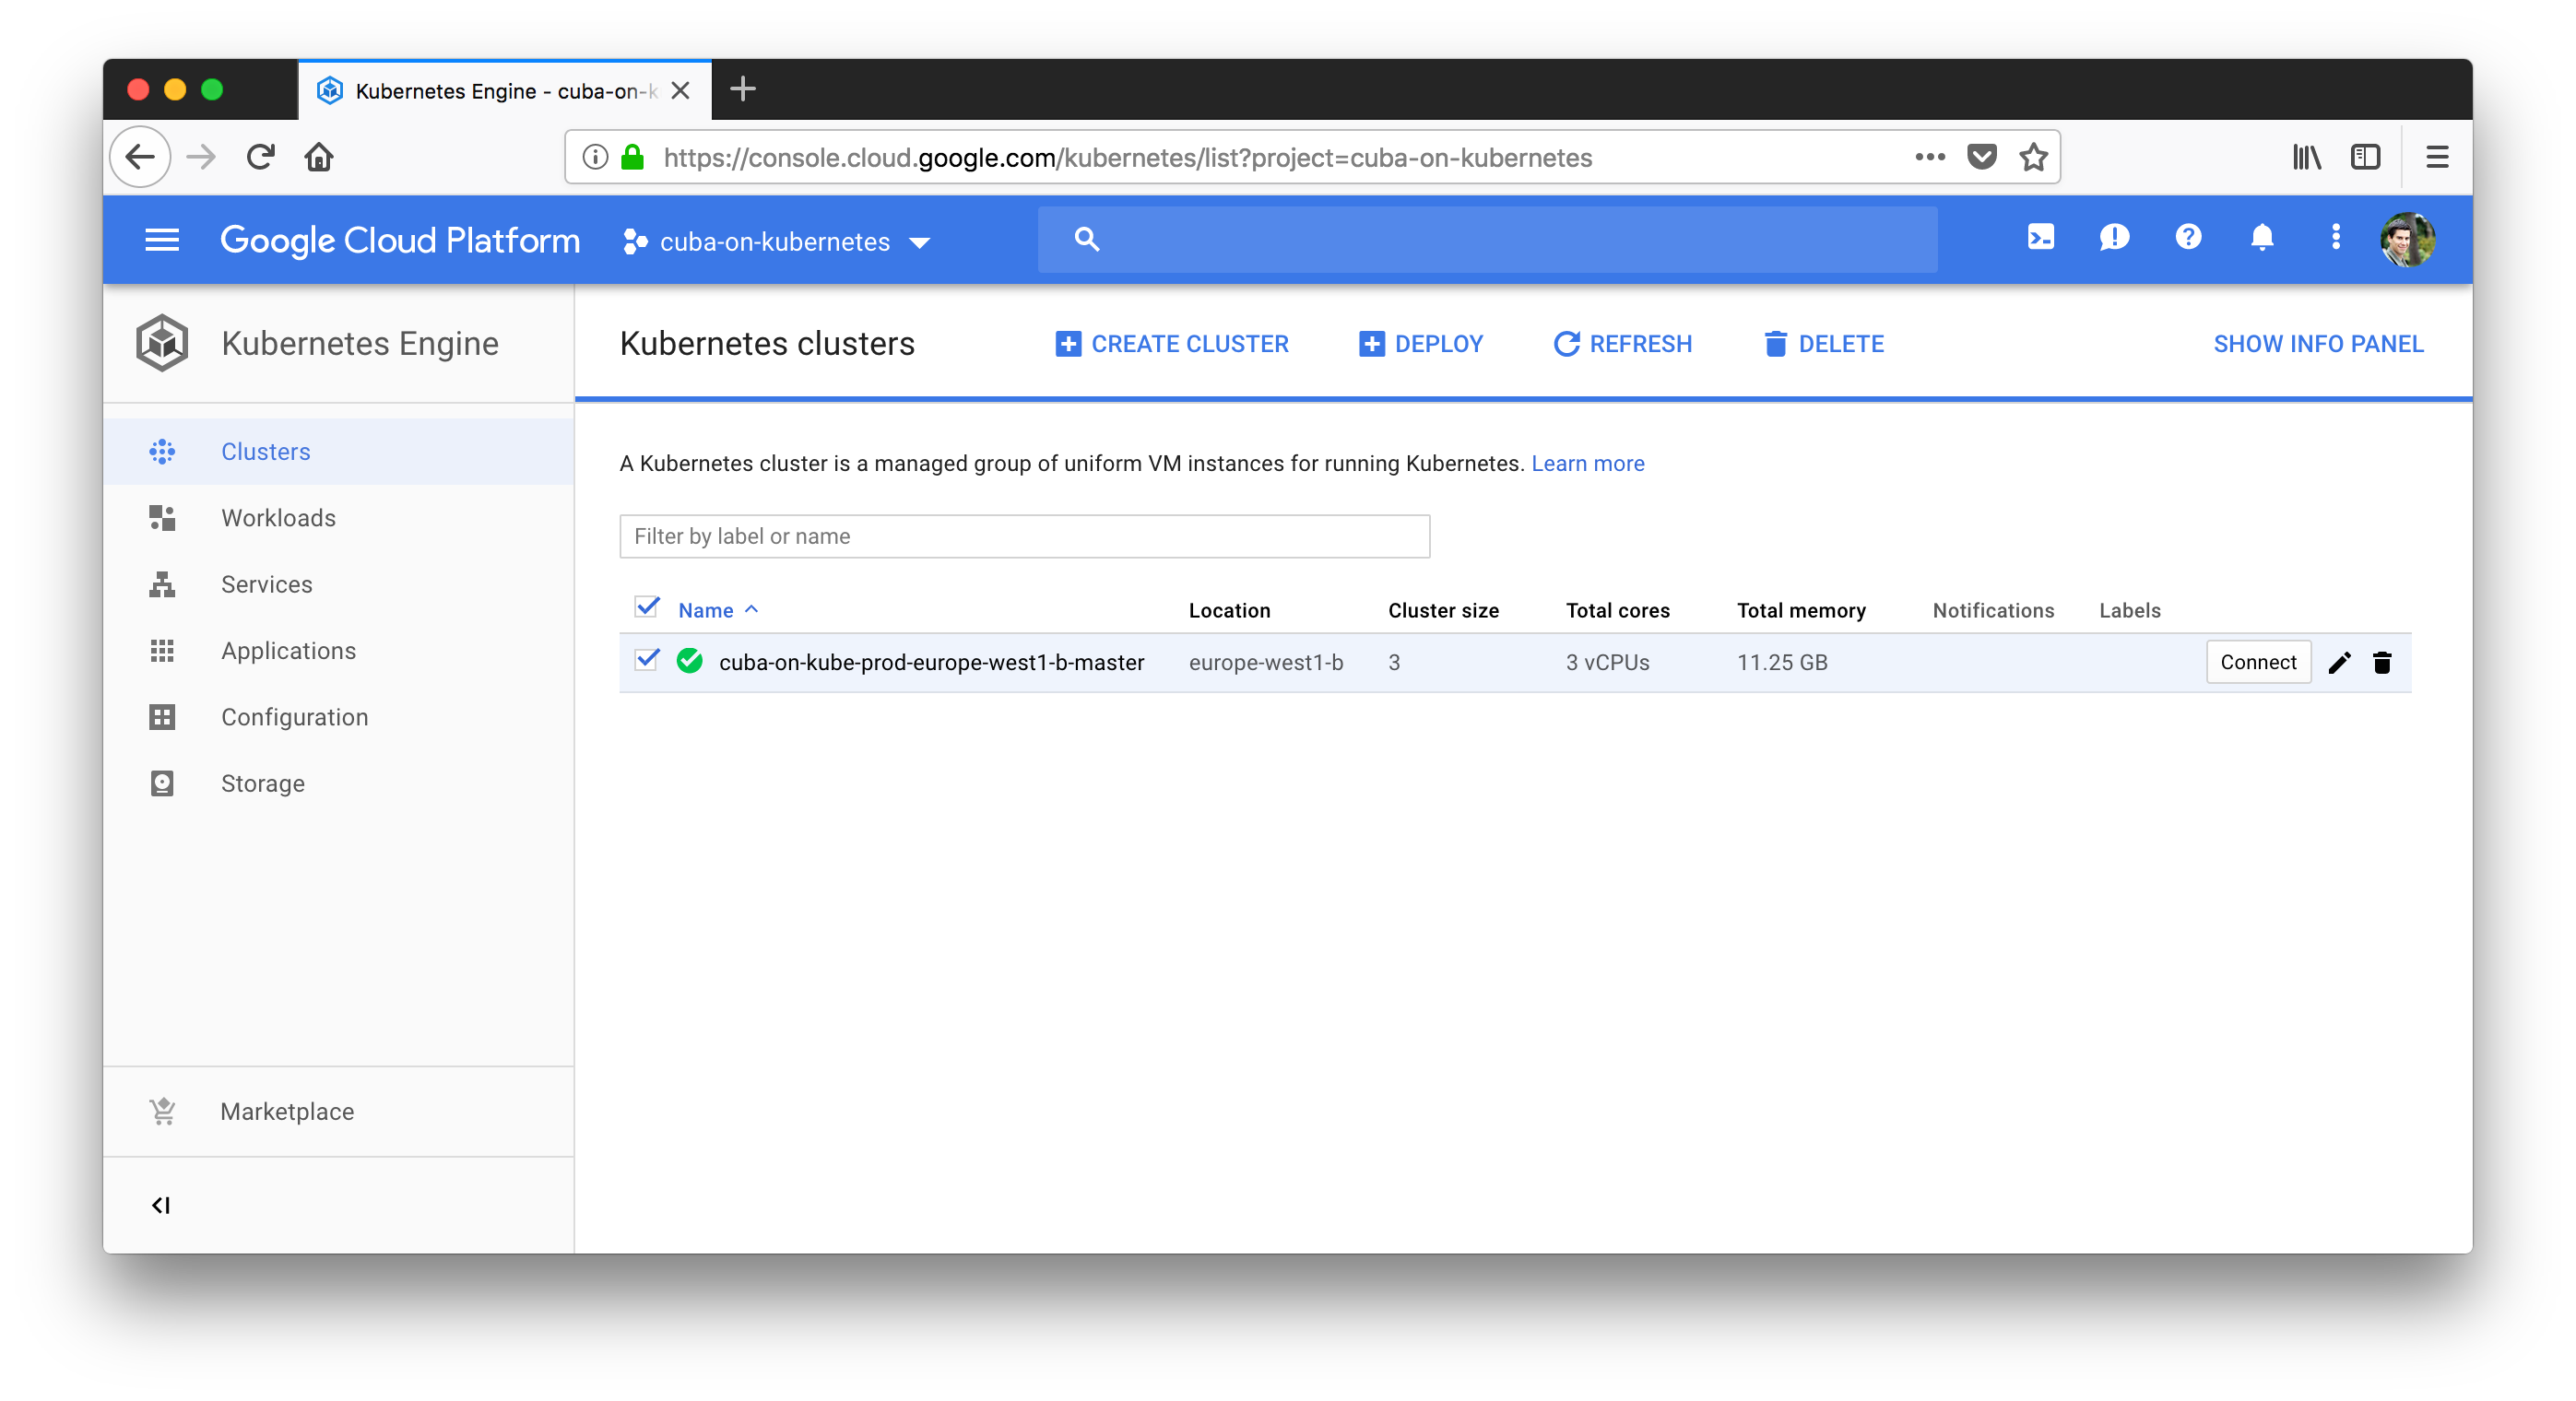 CUBA on Kubernetes - Part 1 – Road to CUBA and beyond